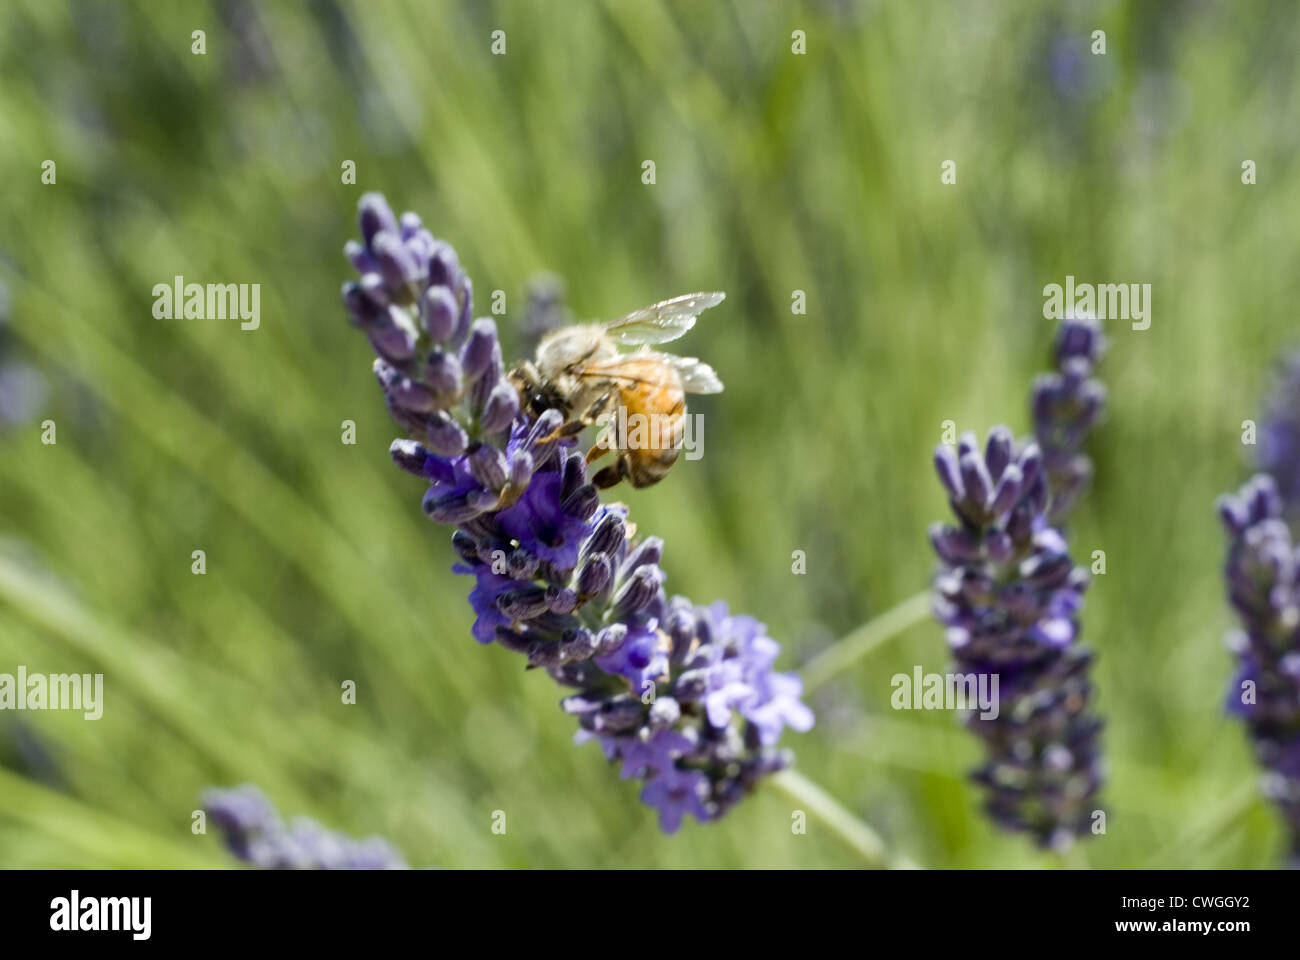 Bee Feeding on a Lavender BloomStock Photo